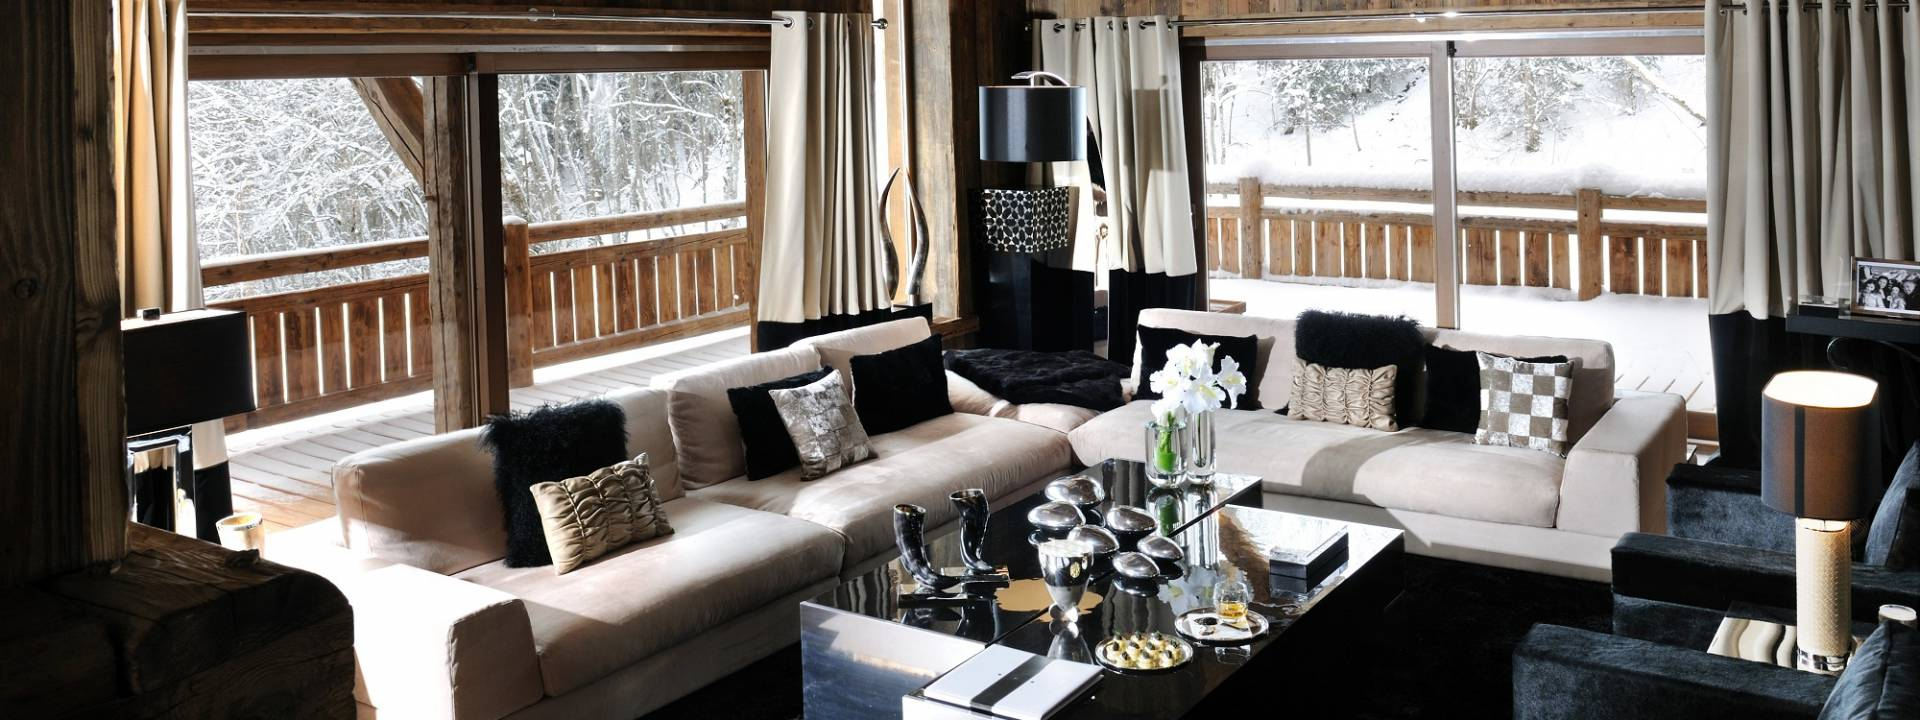 Luxury Winter Chalet, Living room, Switzerland